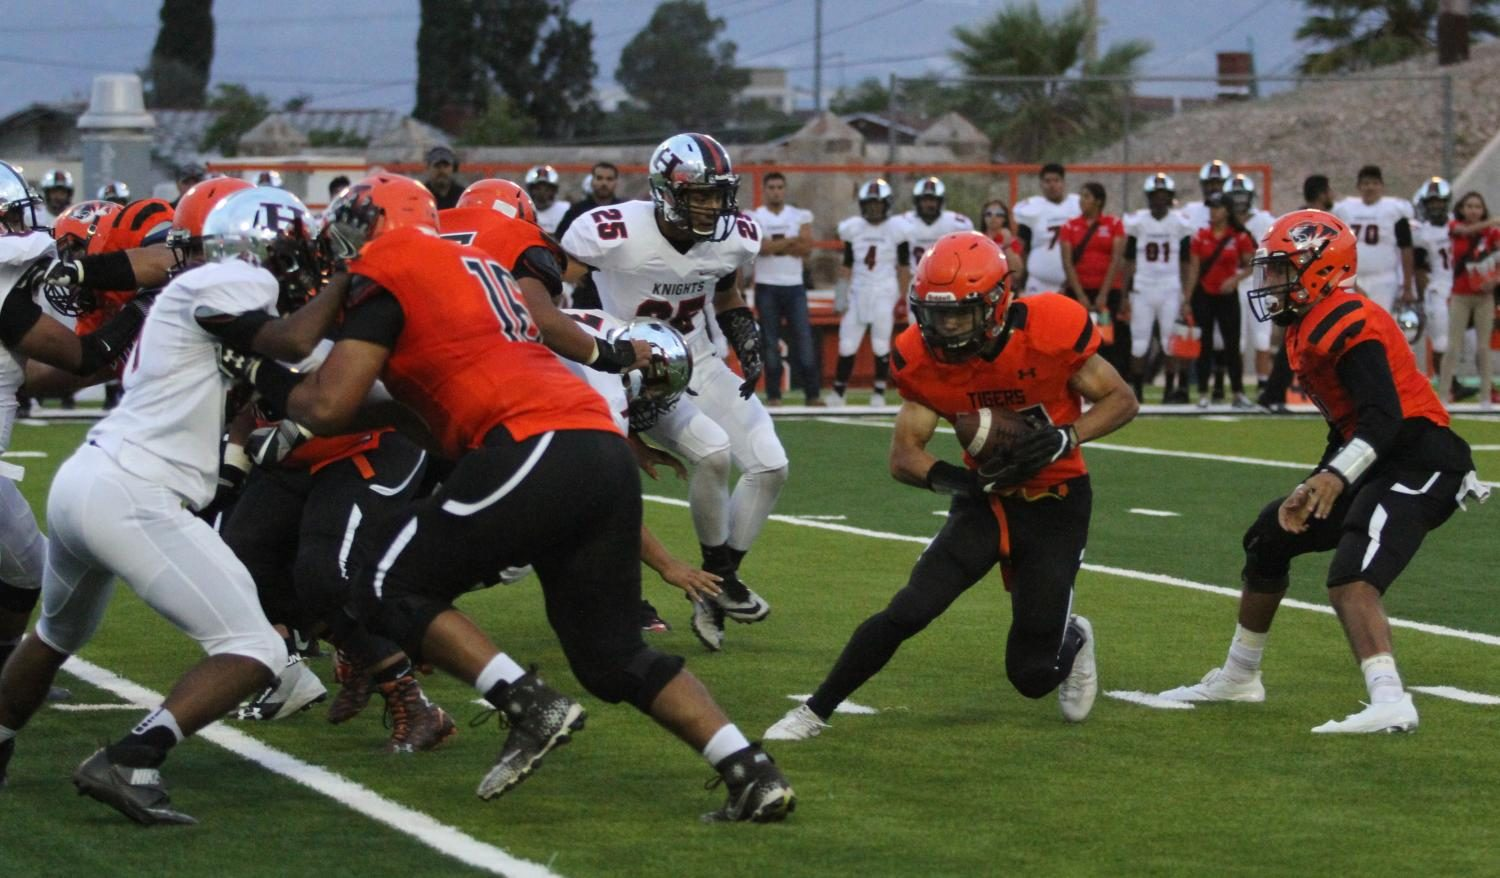 Running back, Shane Rodriguez, takes a hand off from Anthony Escobedo in the 36-28 loss to Hanks.